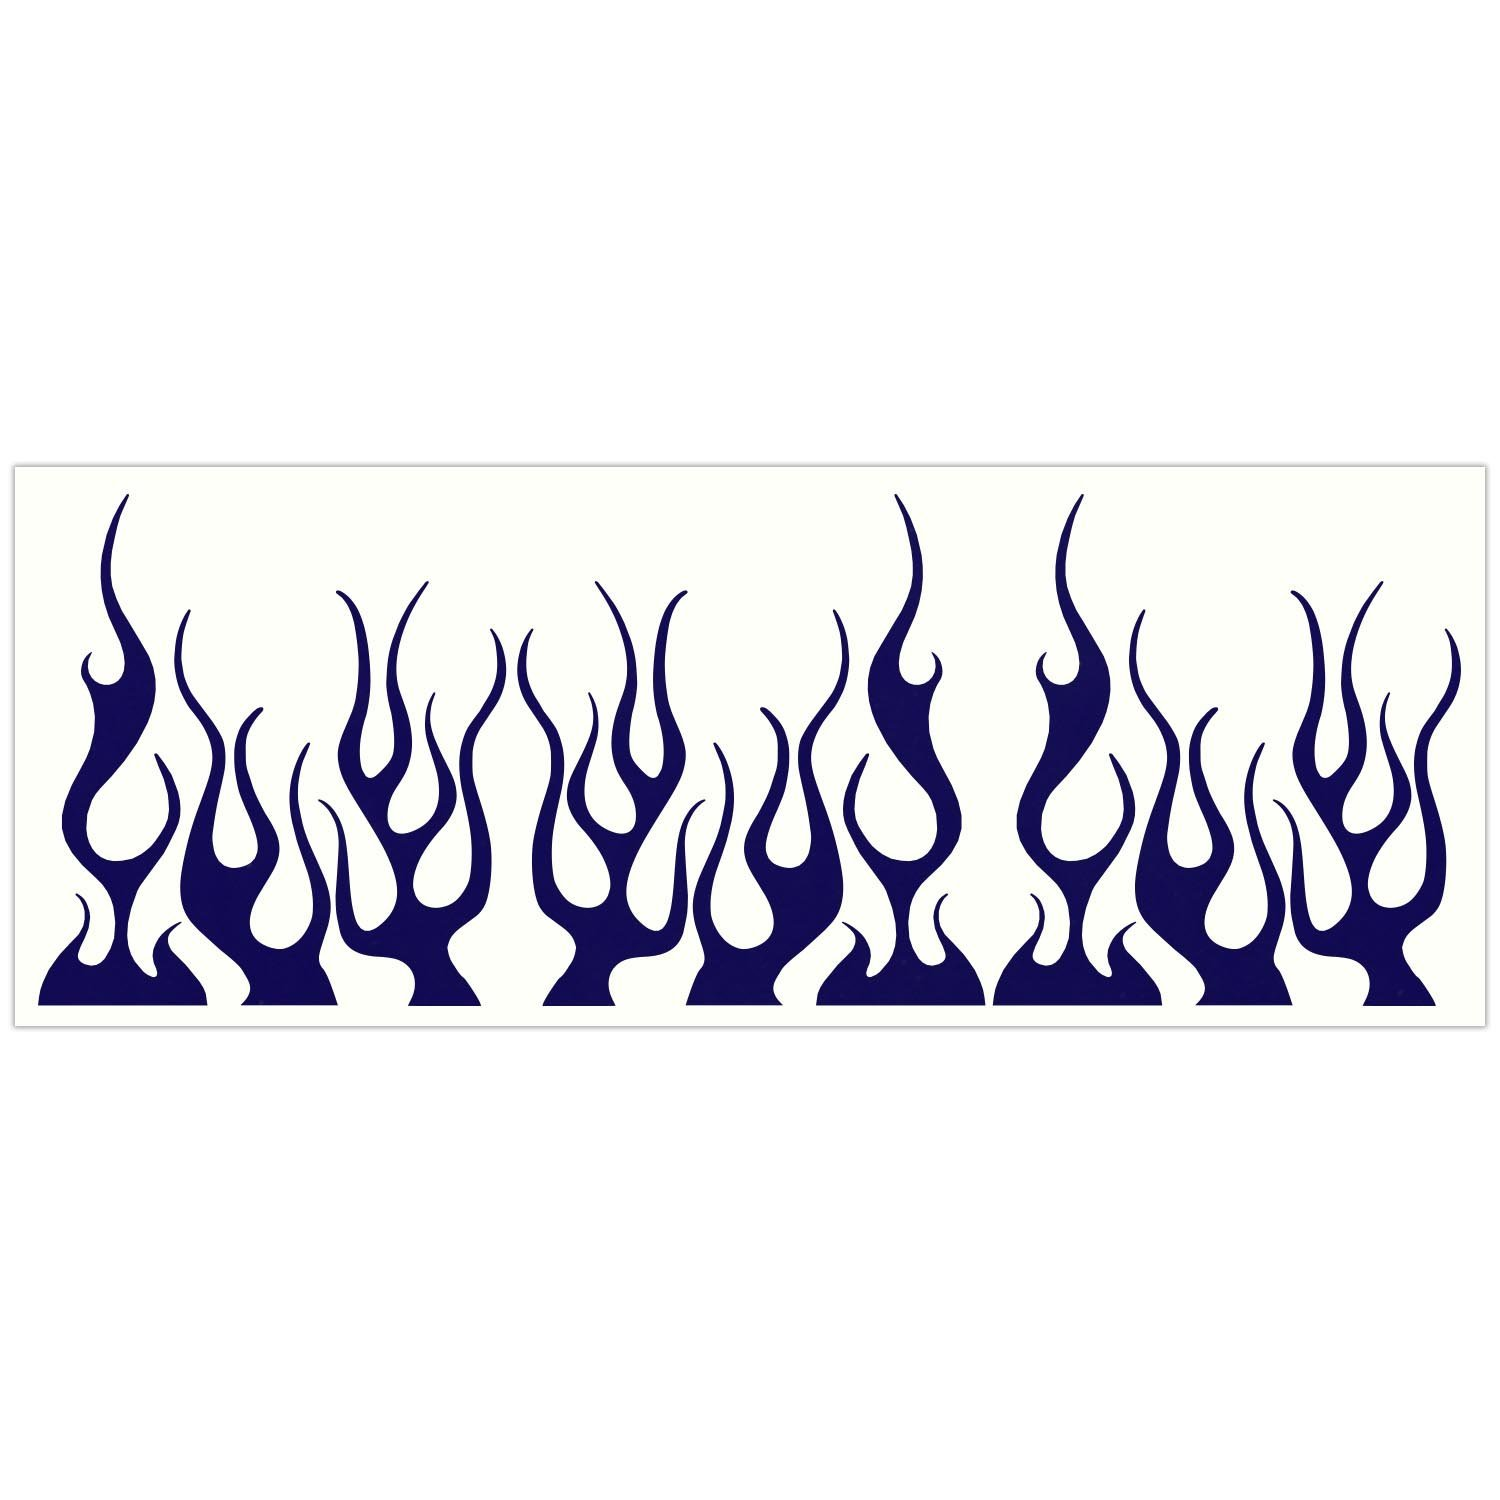 Wheelchairs and More LiteMark Reflective Assorted 4 Inch Flames Sticker Decals for Helmets Strollers Bicycles Pack of 9